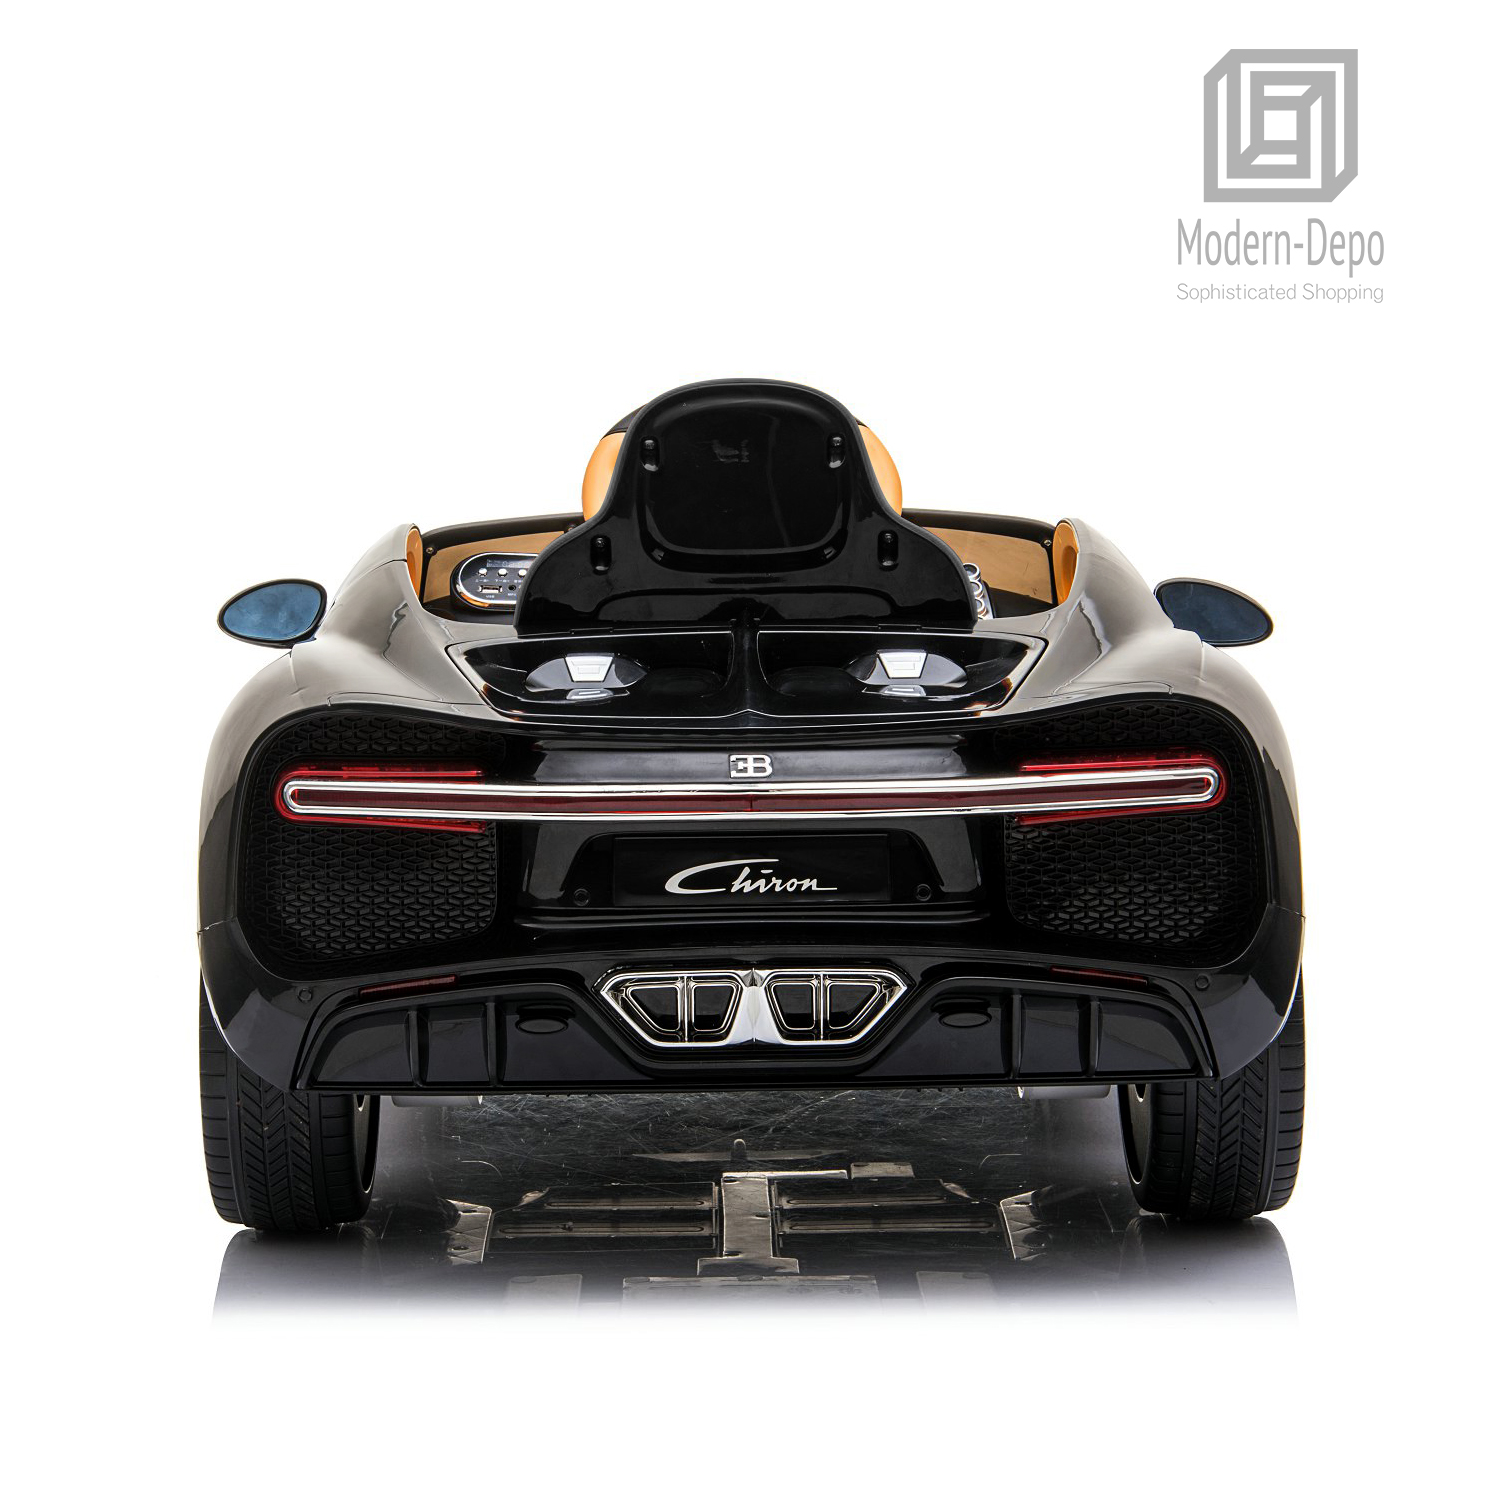 Bugatti-Chiron-12V-Kids-Ride-On-Car-with-Remote-Control-High-Speed-Motor miniature 12